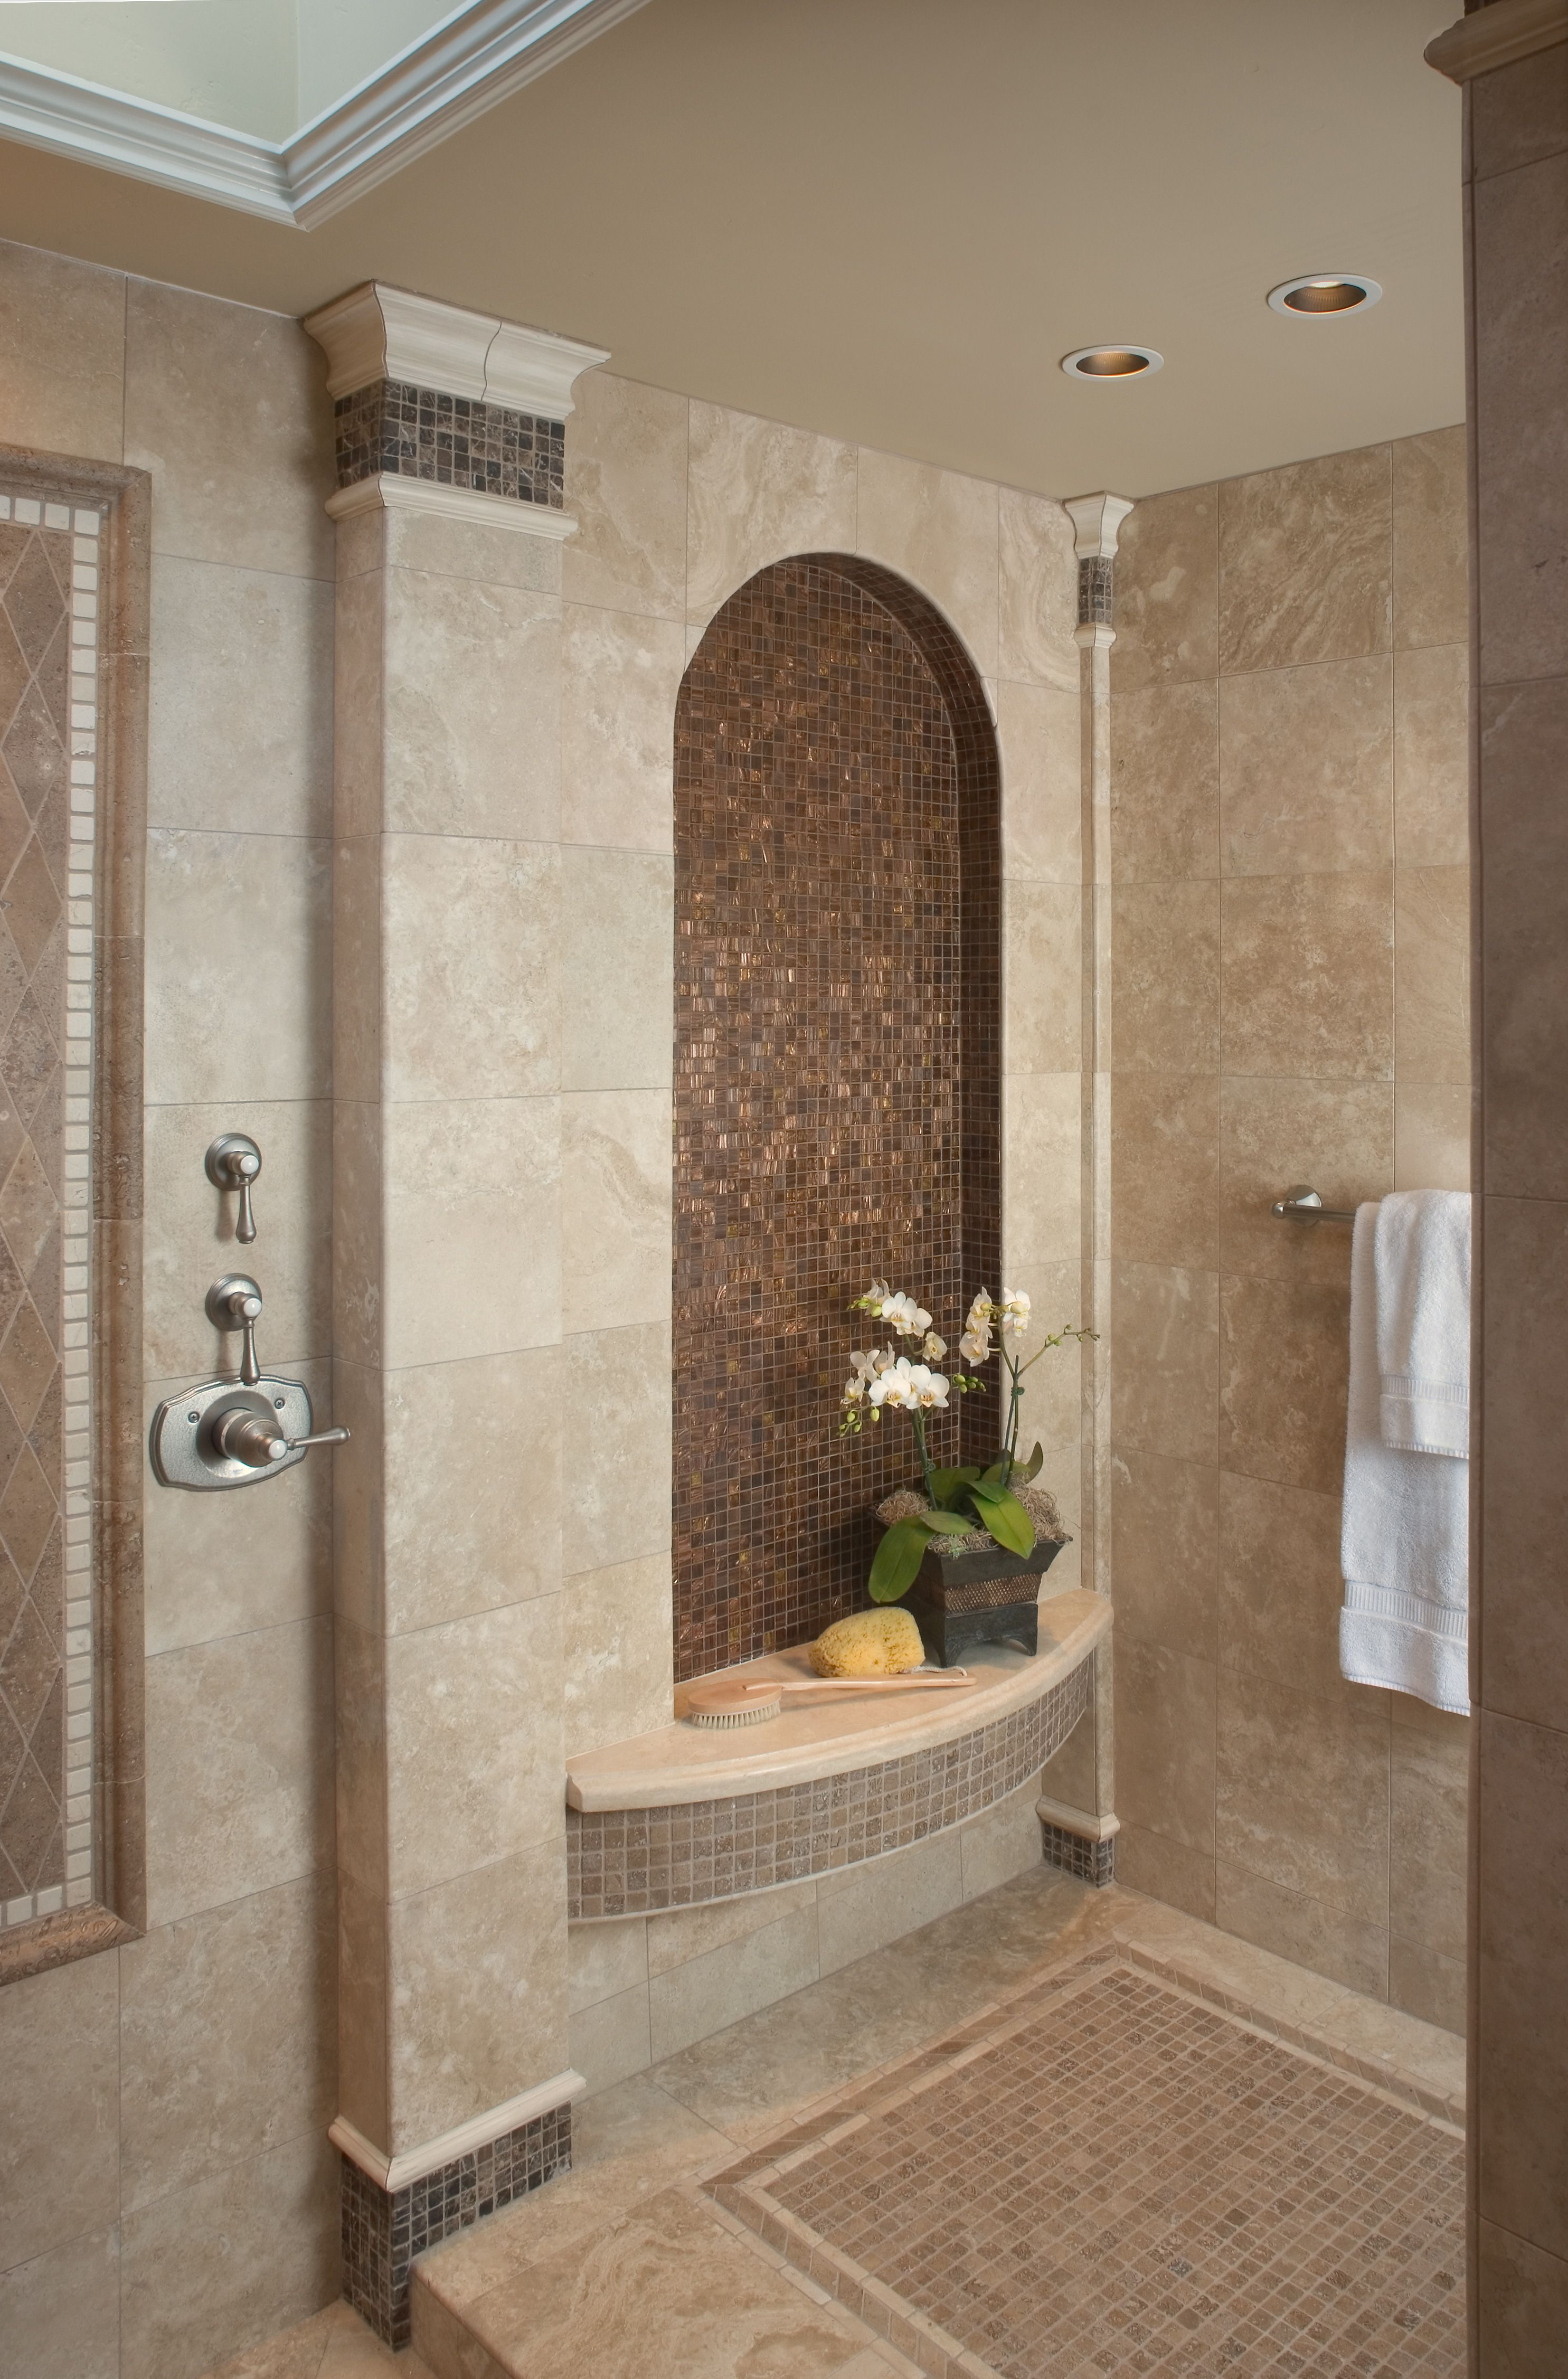 Roman Style Tiled Shower Area (Via Fleming Master Bath